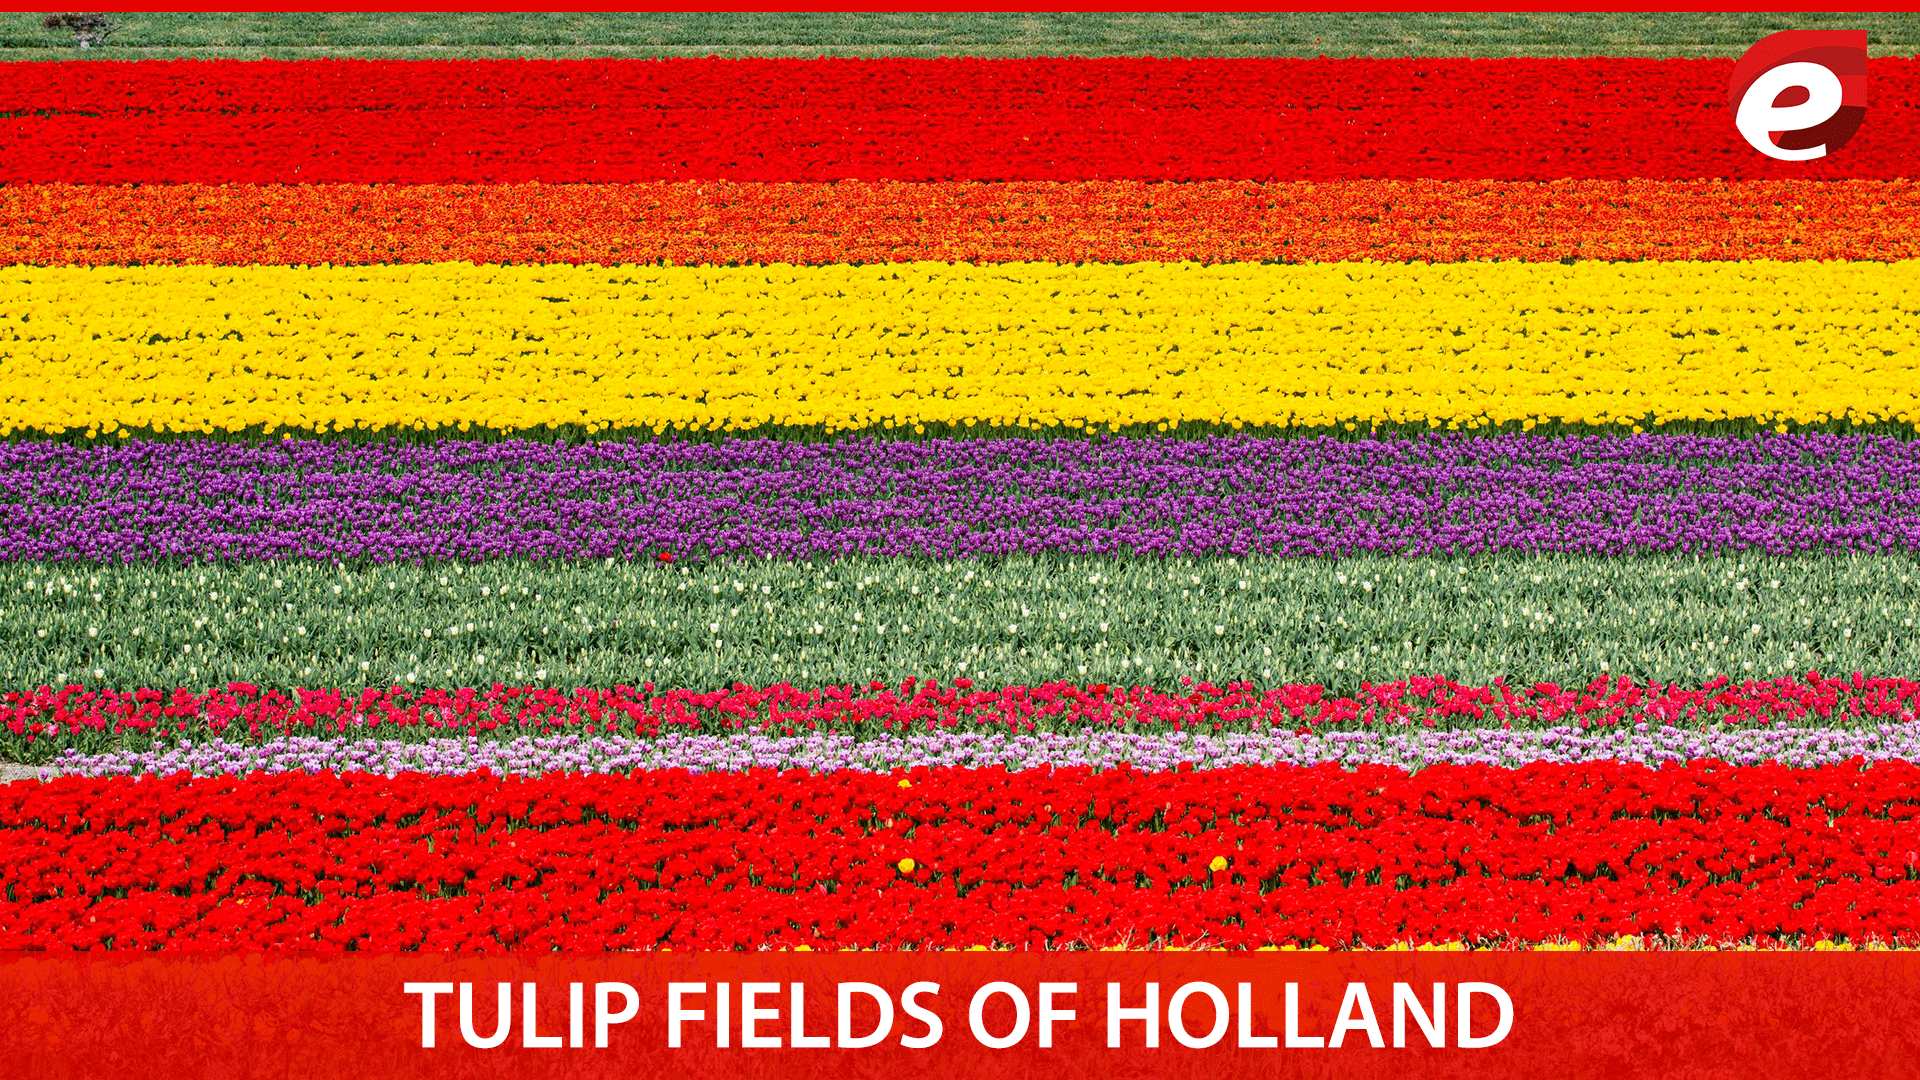 most colorful places on earth- Tulip fields